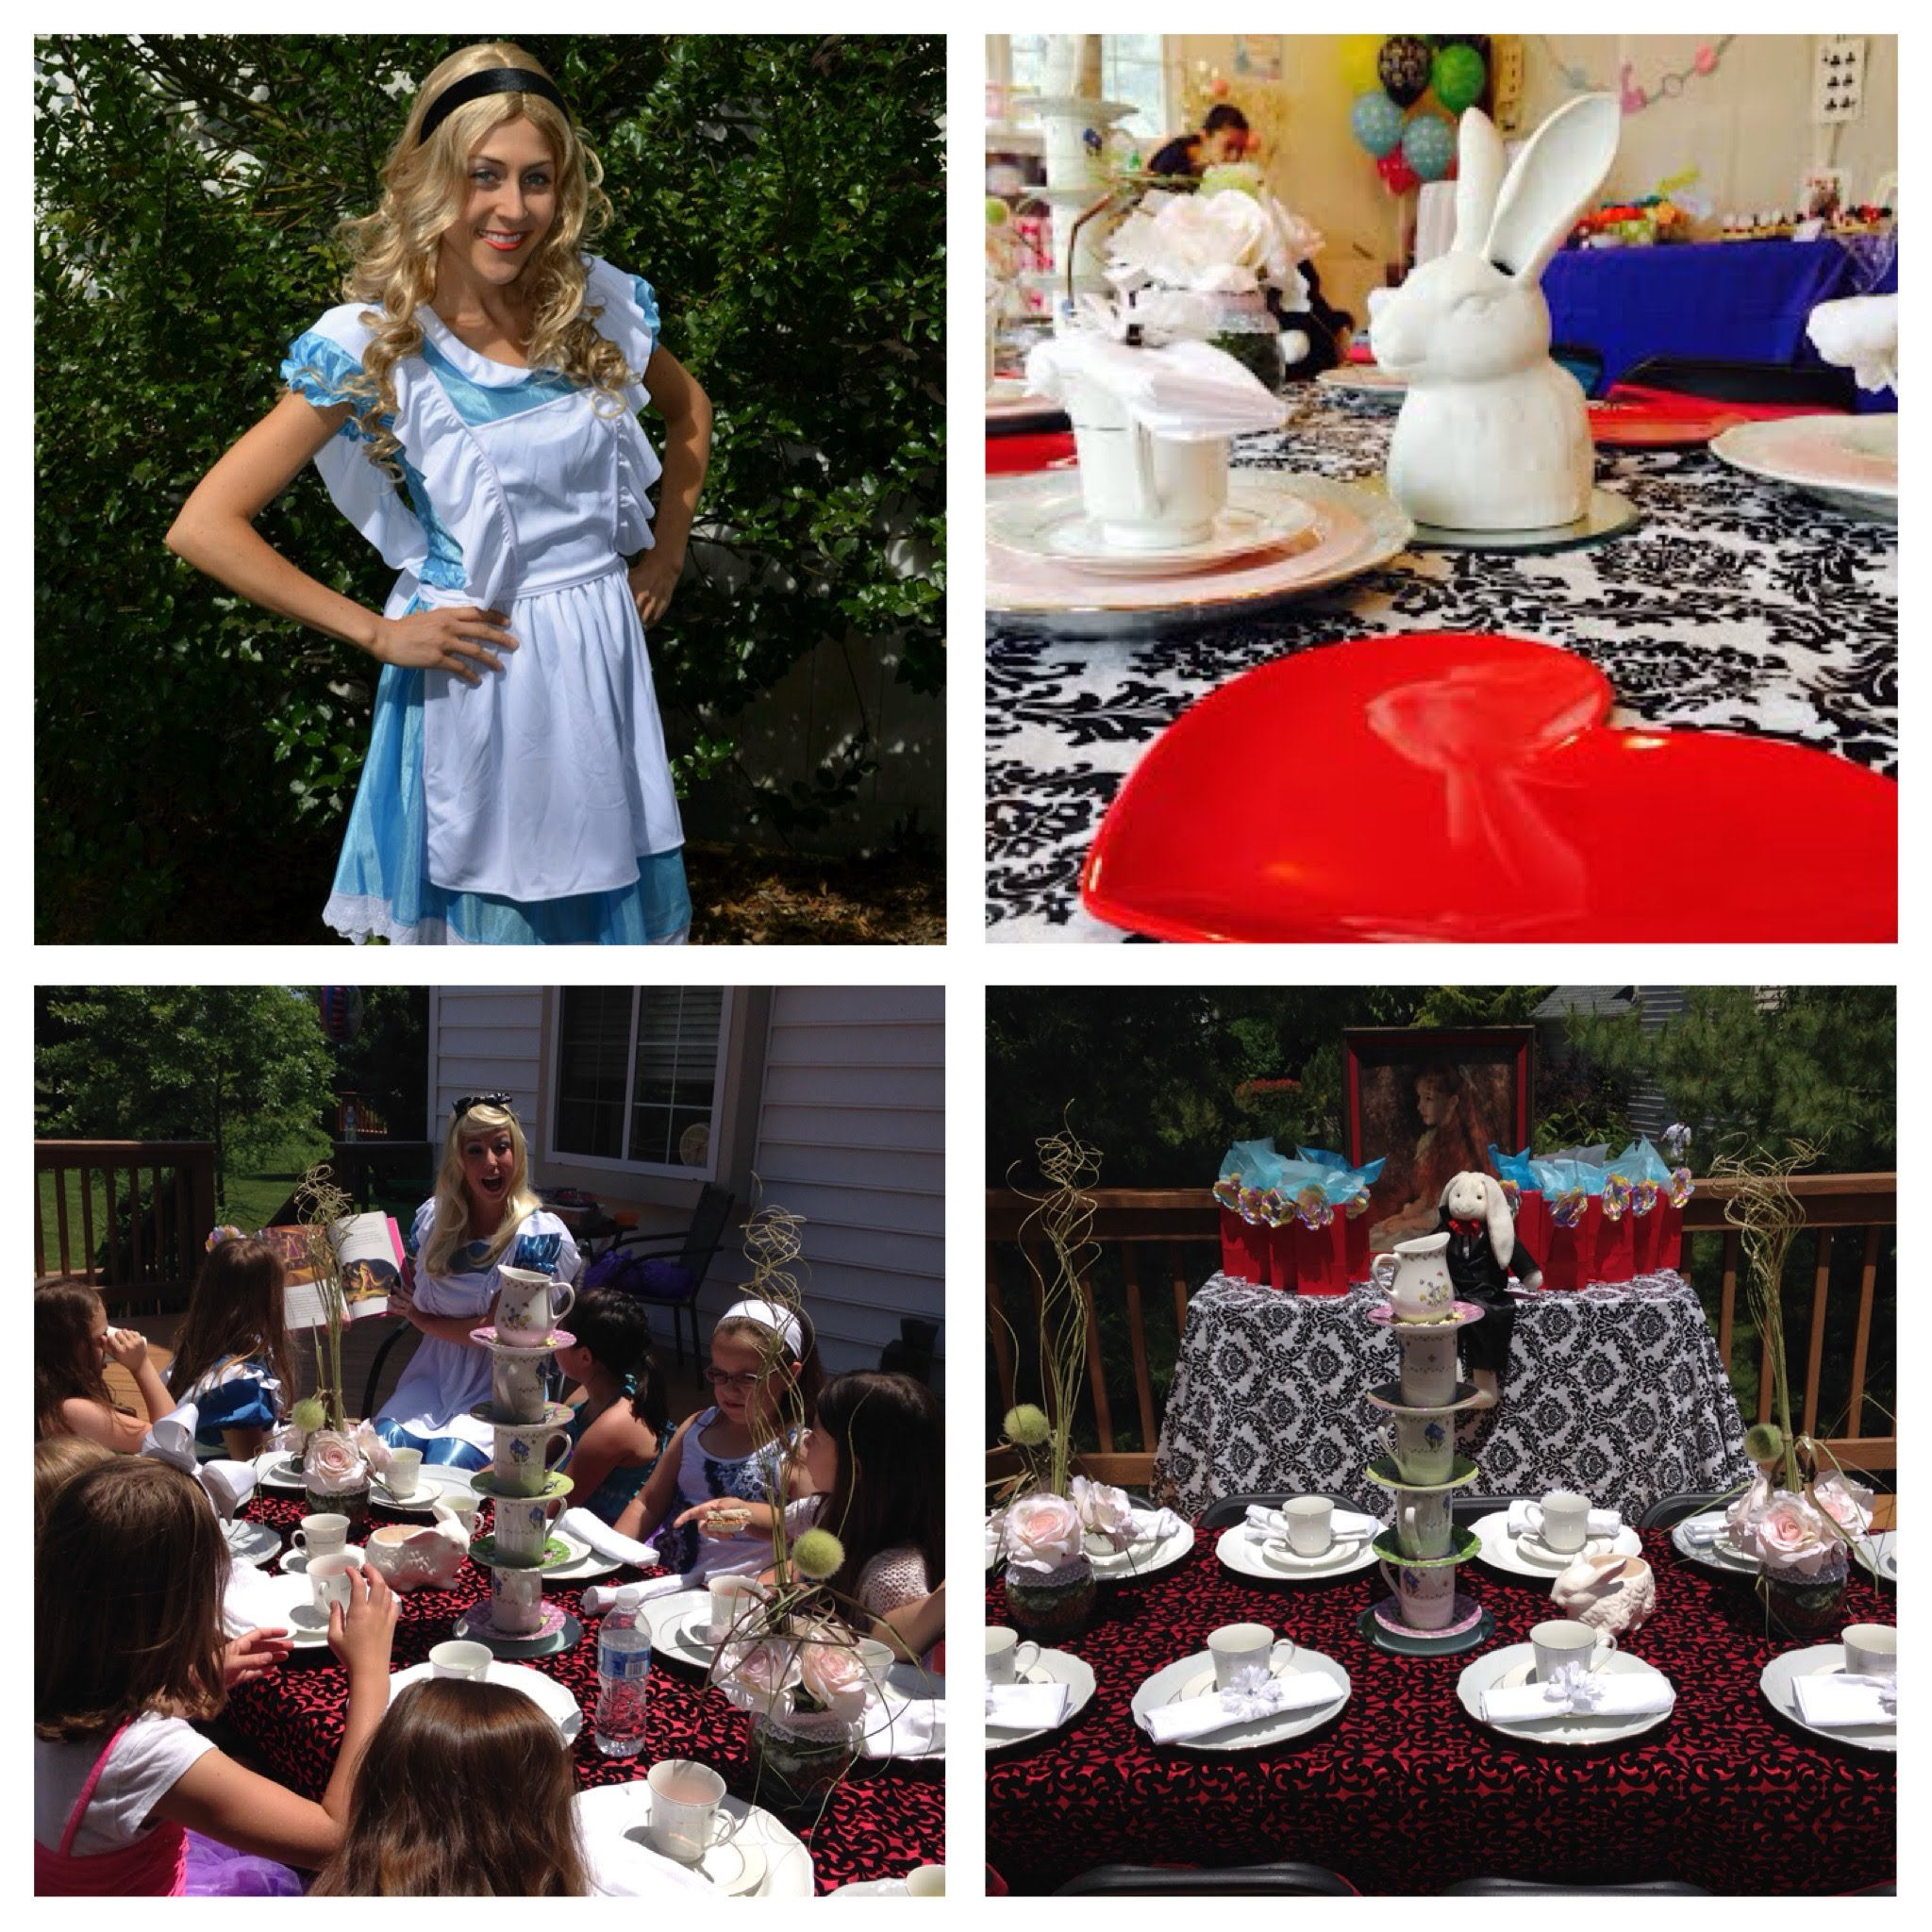 Birthday Party Entertainment Nj: NJ Tea Parties At Home Alice In Wonderland Theme Party For